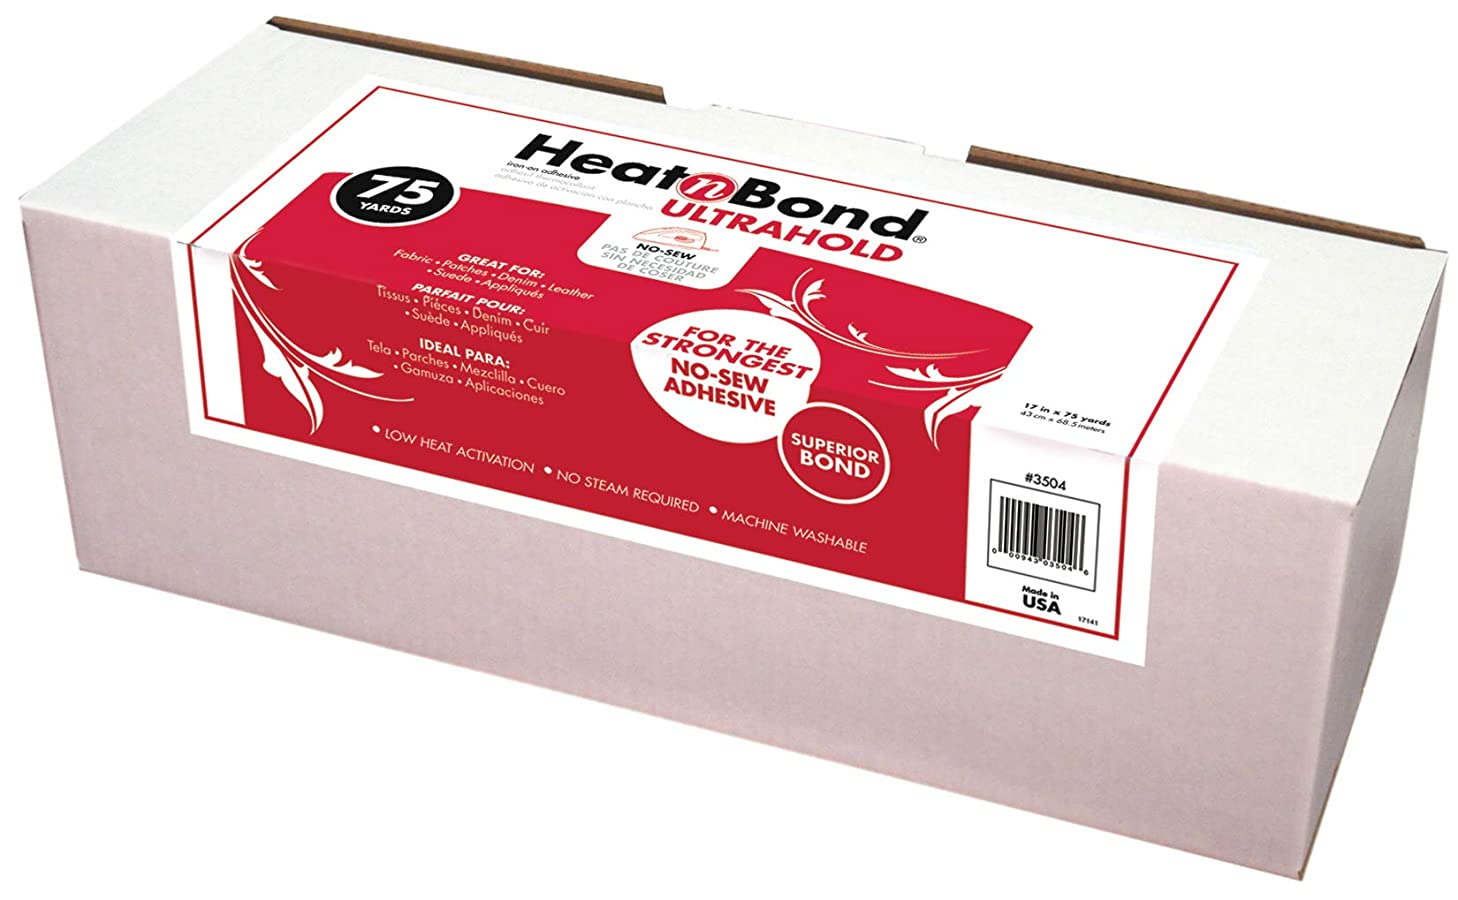 HeatnBond UltraHold Iron-On Adhesive, 17 Inches x 75 Yard Roll in Display Box